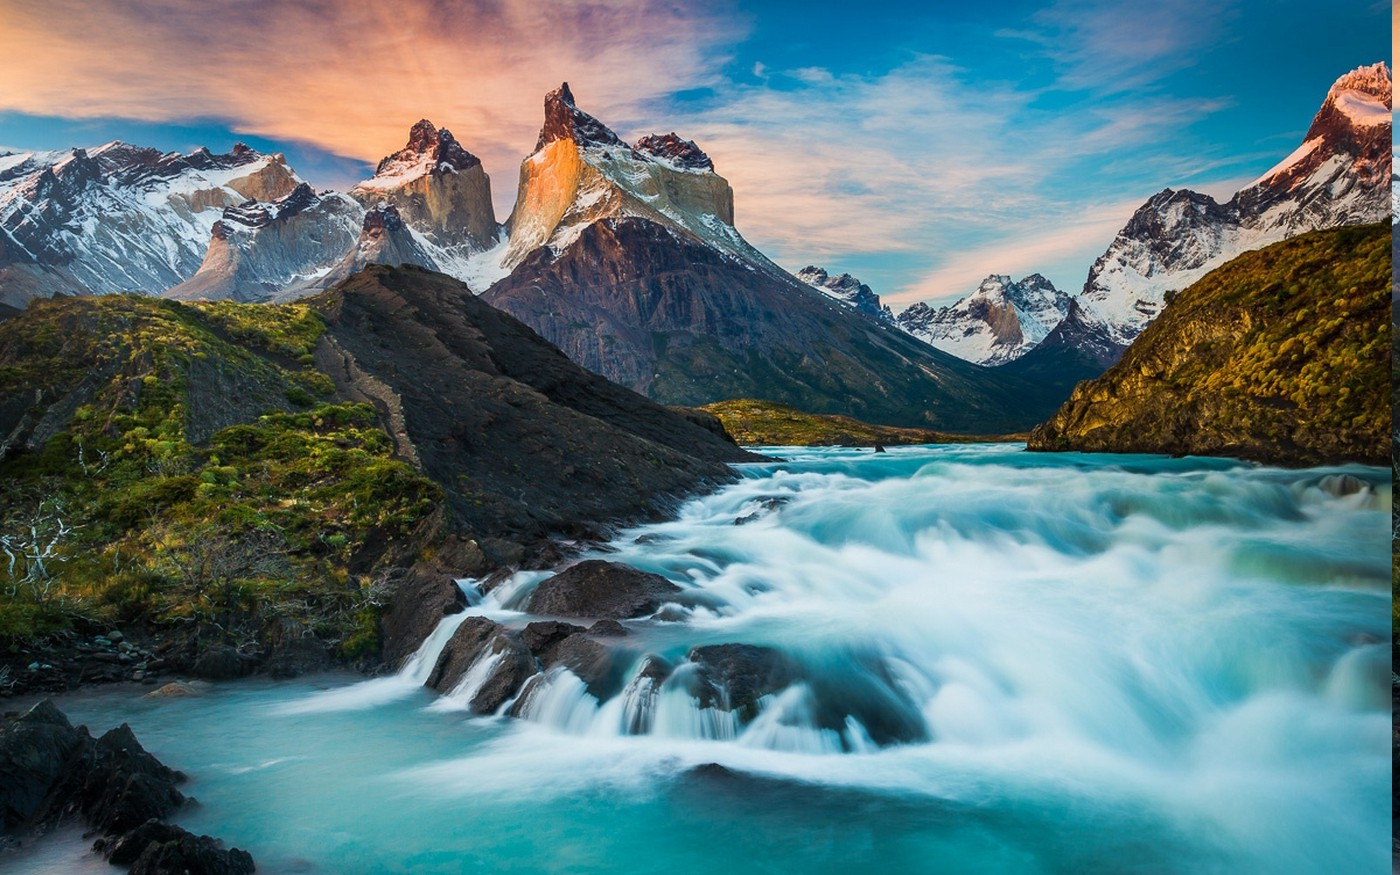 Free Full Screen Fall Wallpaper Nature Landscape Torres Del Paine Horns Fall Chile